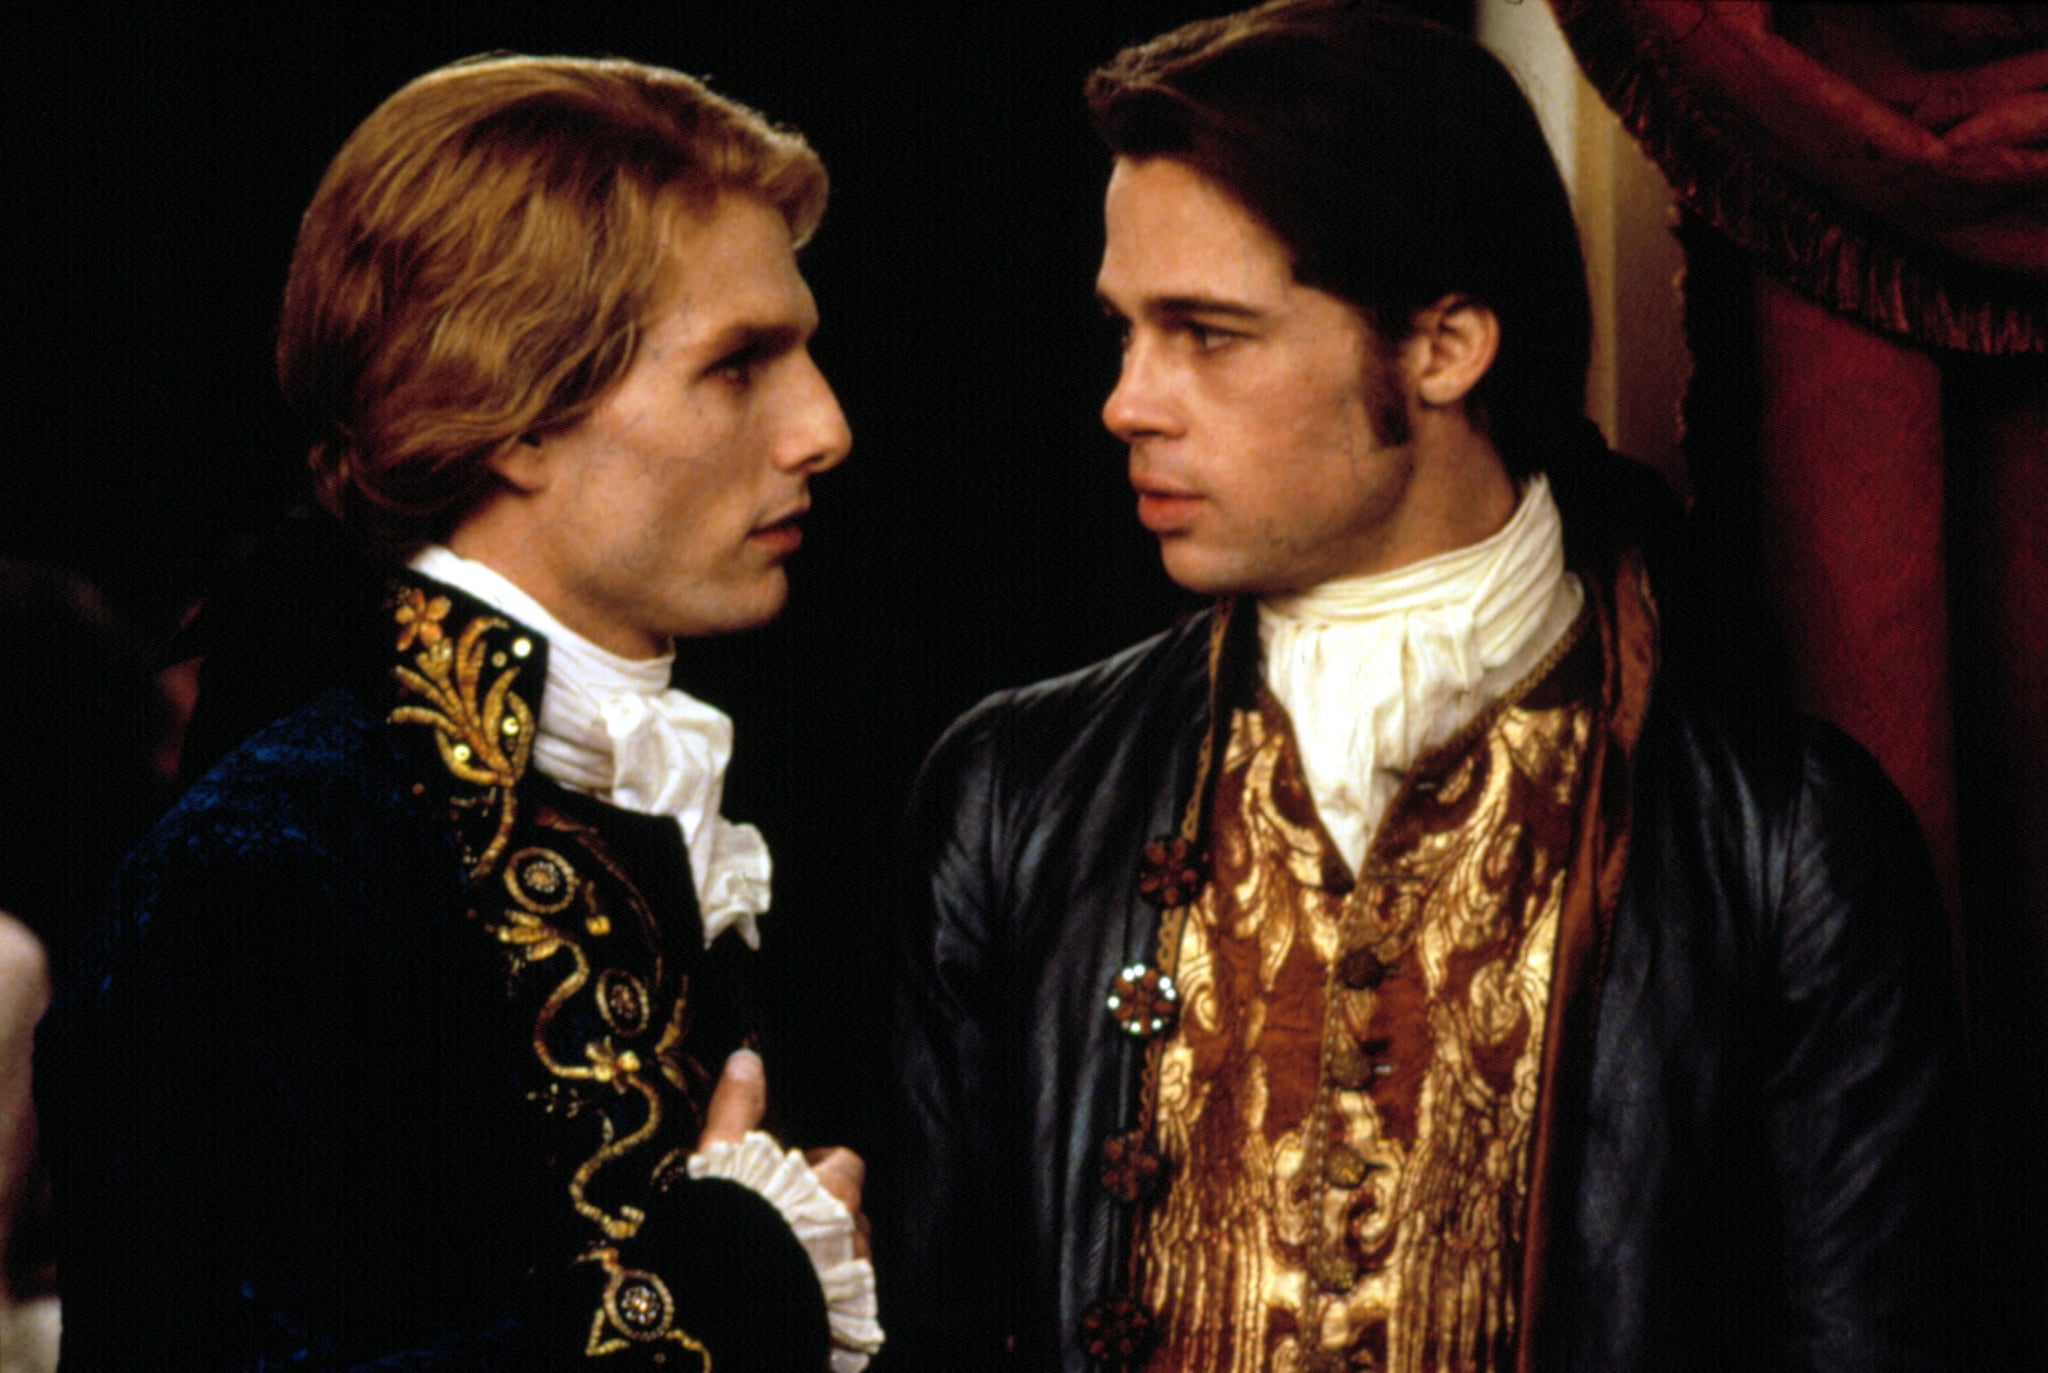 Interview With The Vampire The Vampire Chronicles 1994 Brad Pitt Has Aged Like A Fine Wine On The Big Screen Popsugar Entertainment Photo 10